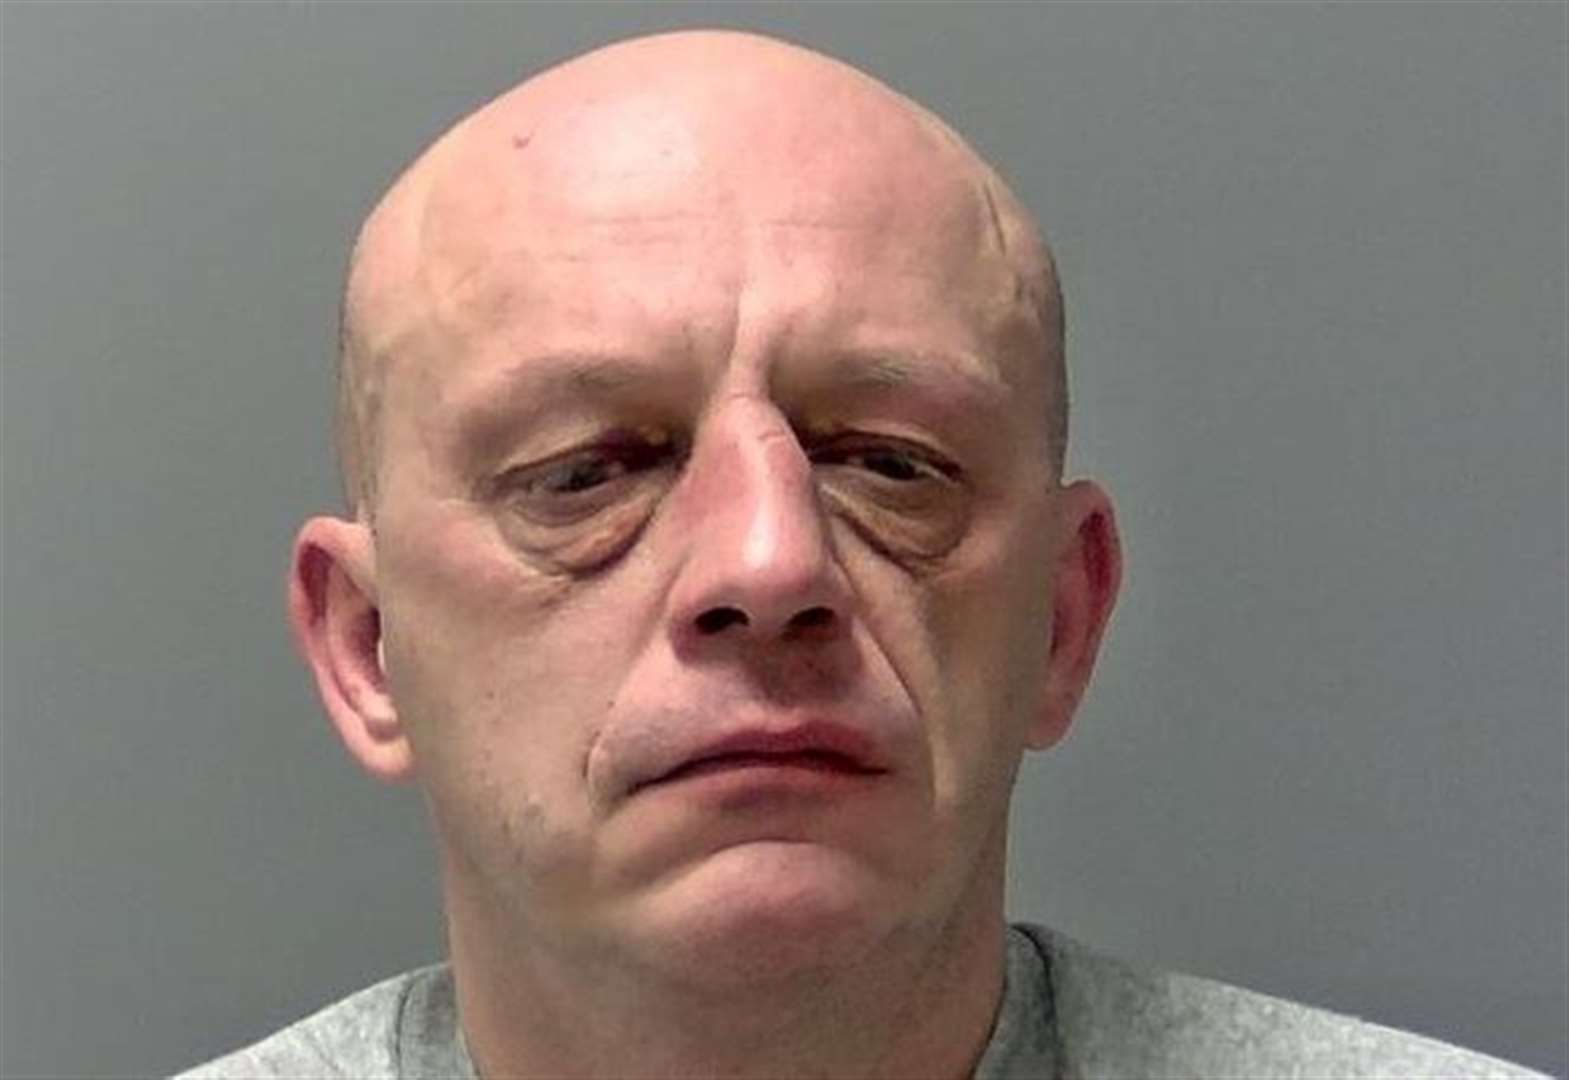 VIDEO: Thetford drink-driver jailed for travelling the wrong way on the A14